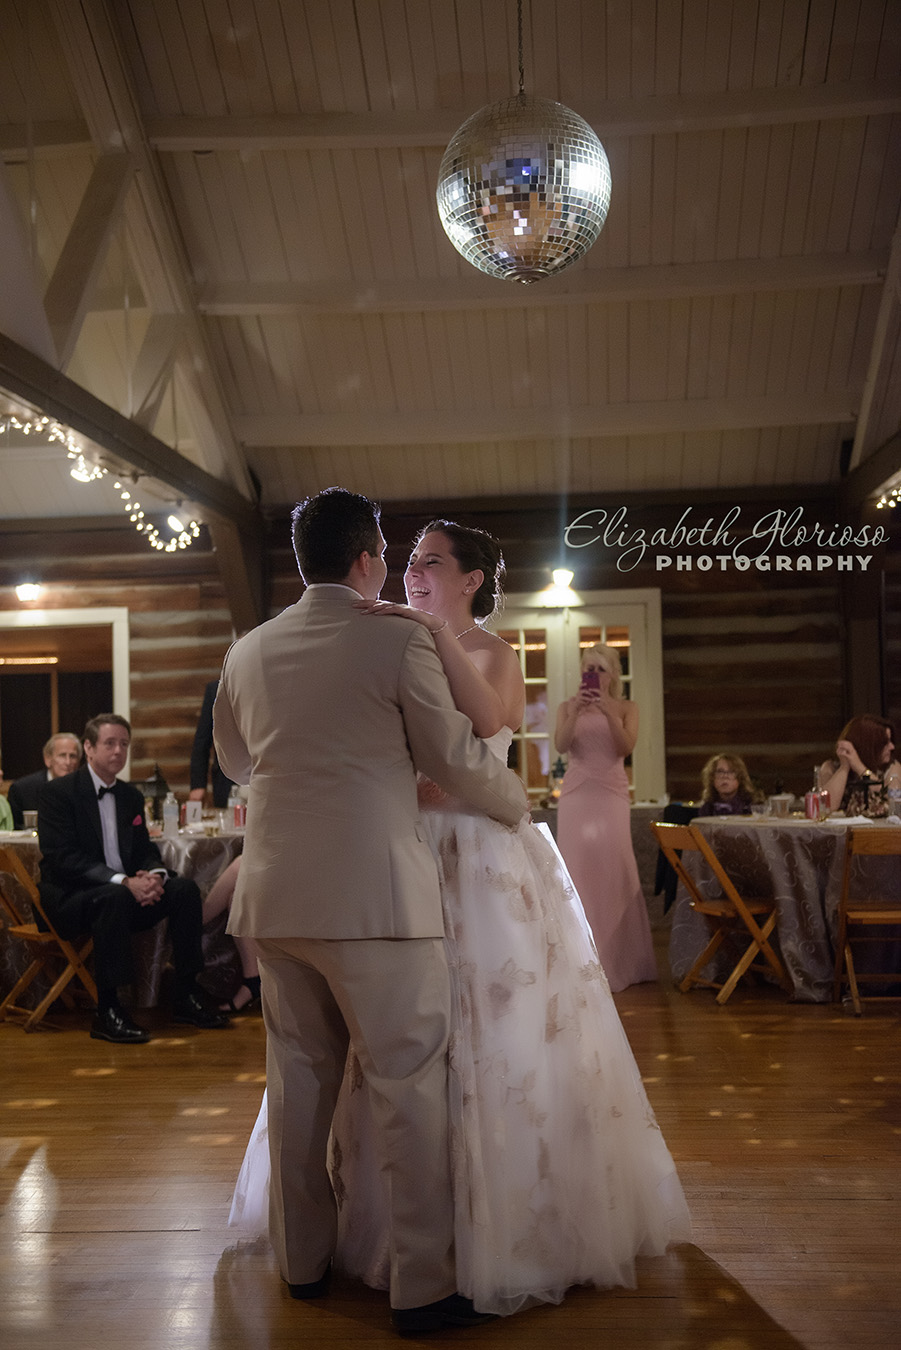 Vermilion_wedding_Glorioso Photography_1044